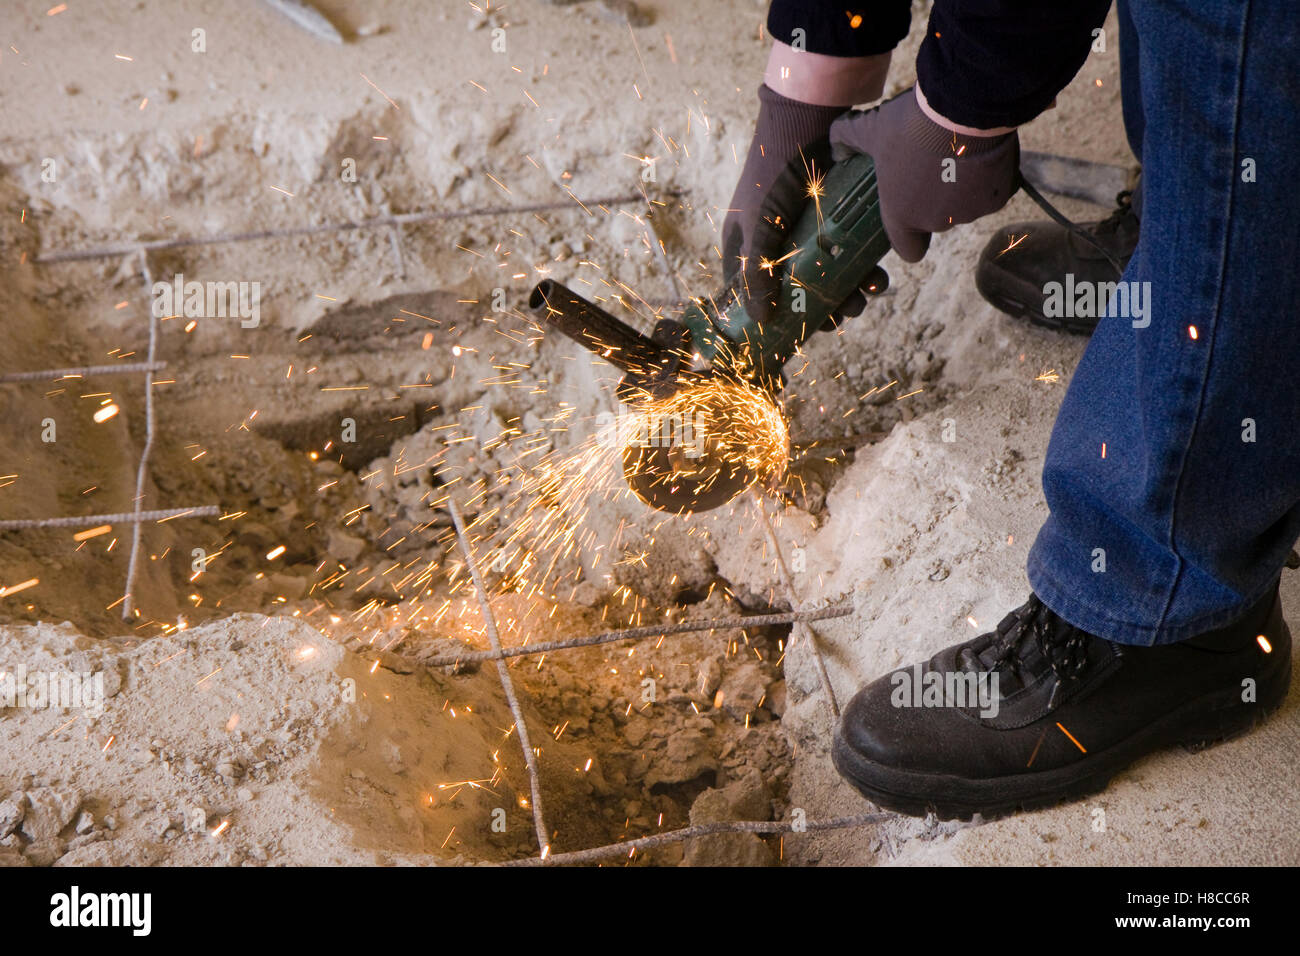 bricklayer at work in a building site - Stock Image